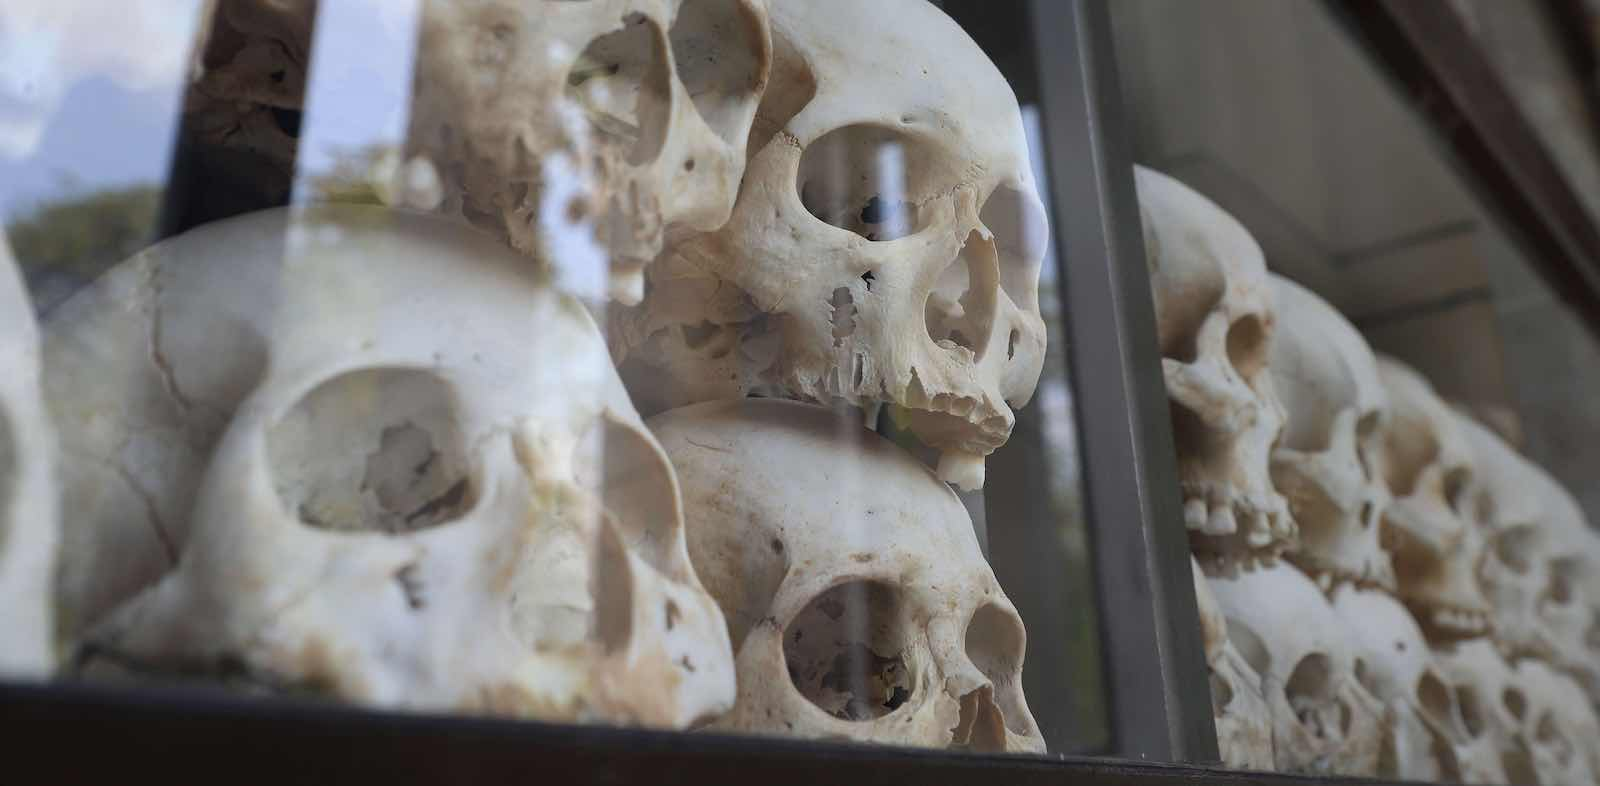 Victims of the Pol Pot regime on display in a memorial tower at the Choeung Ek killing fields (Photo: Satoshi Takahashi via Getty)